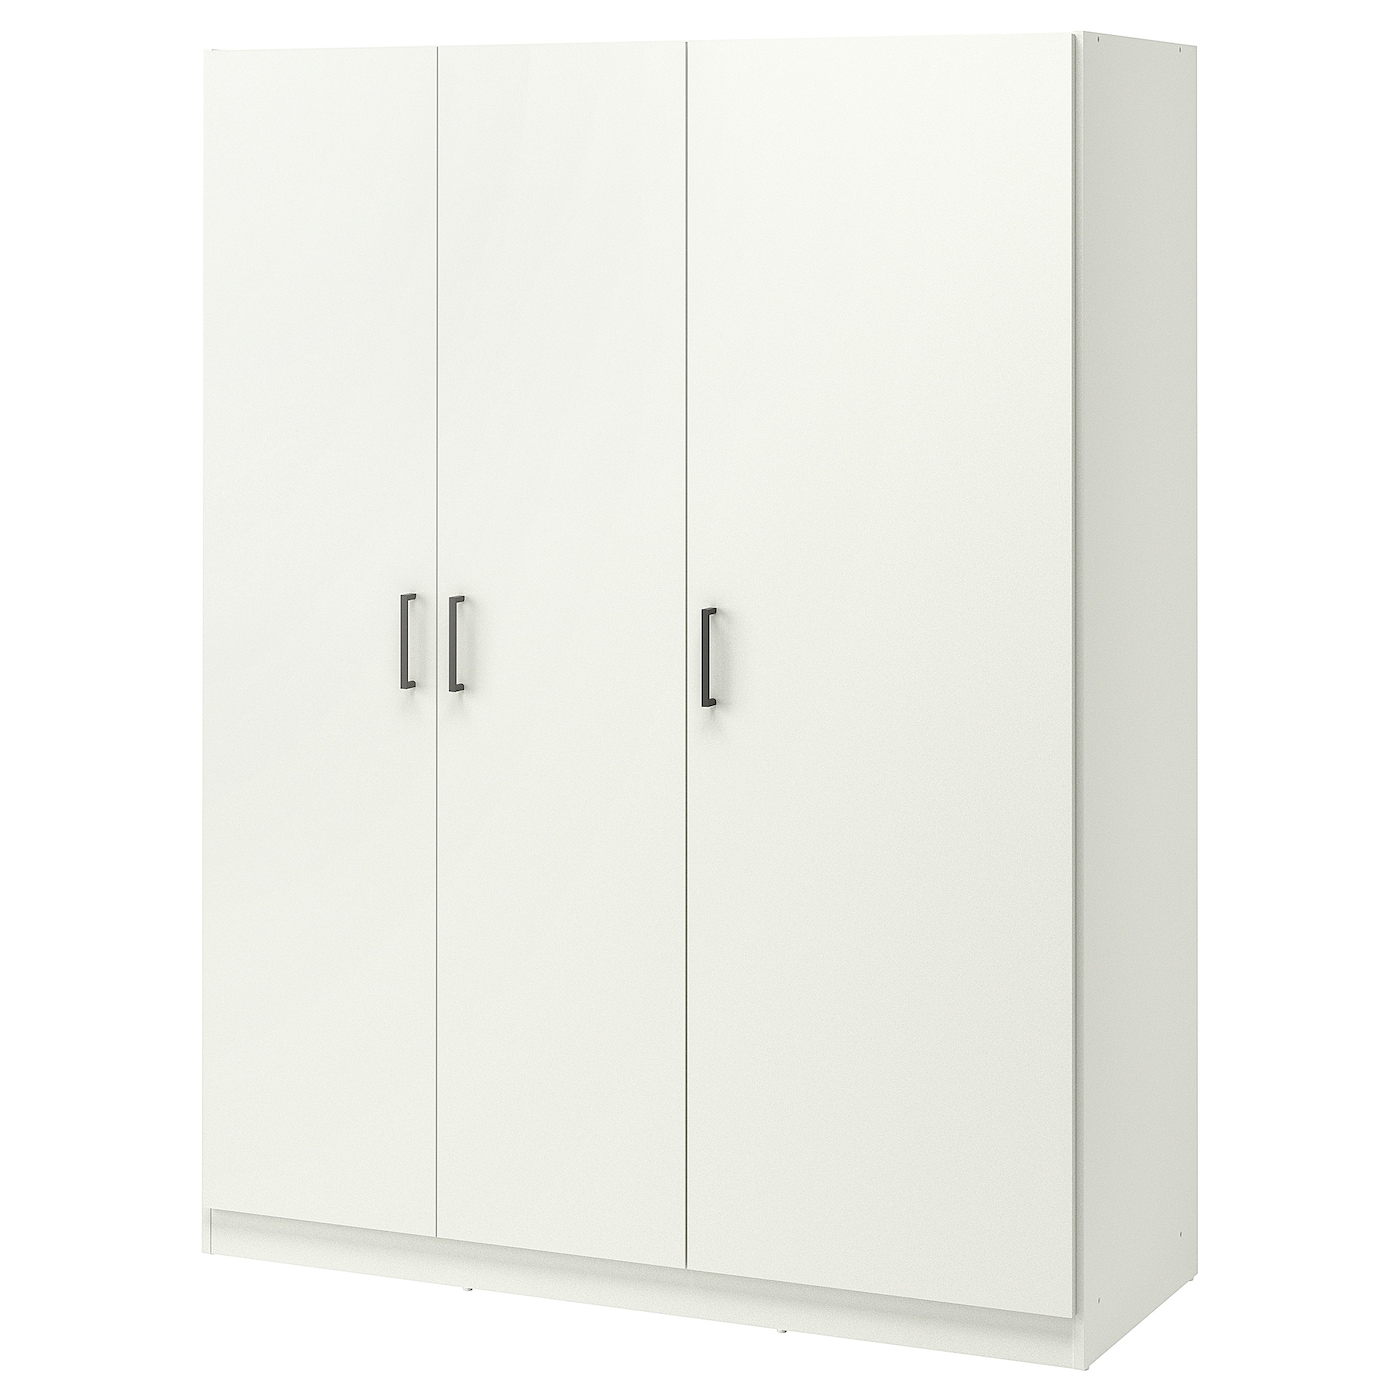 2 Door Double Wardrobe Mohogany Effect Bedroom Furniture Cupboard Moderate Price Wardrobes